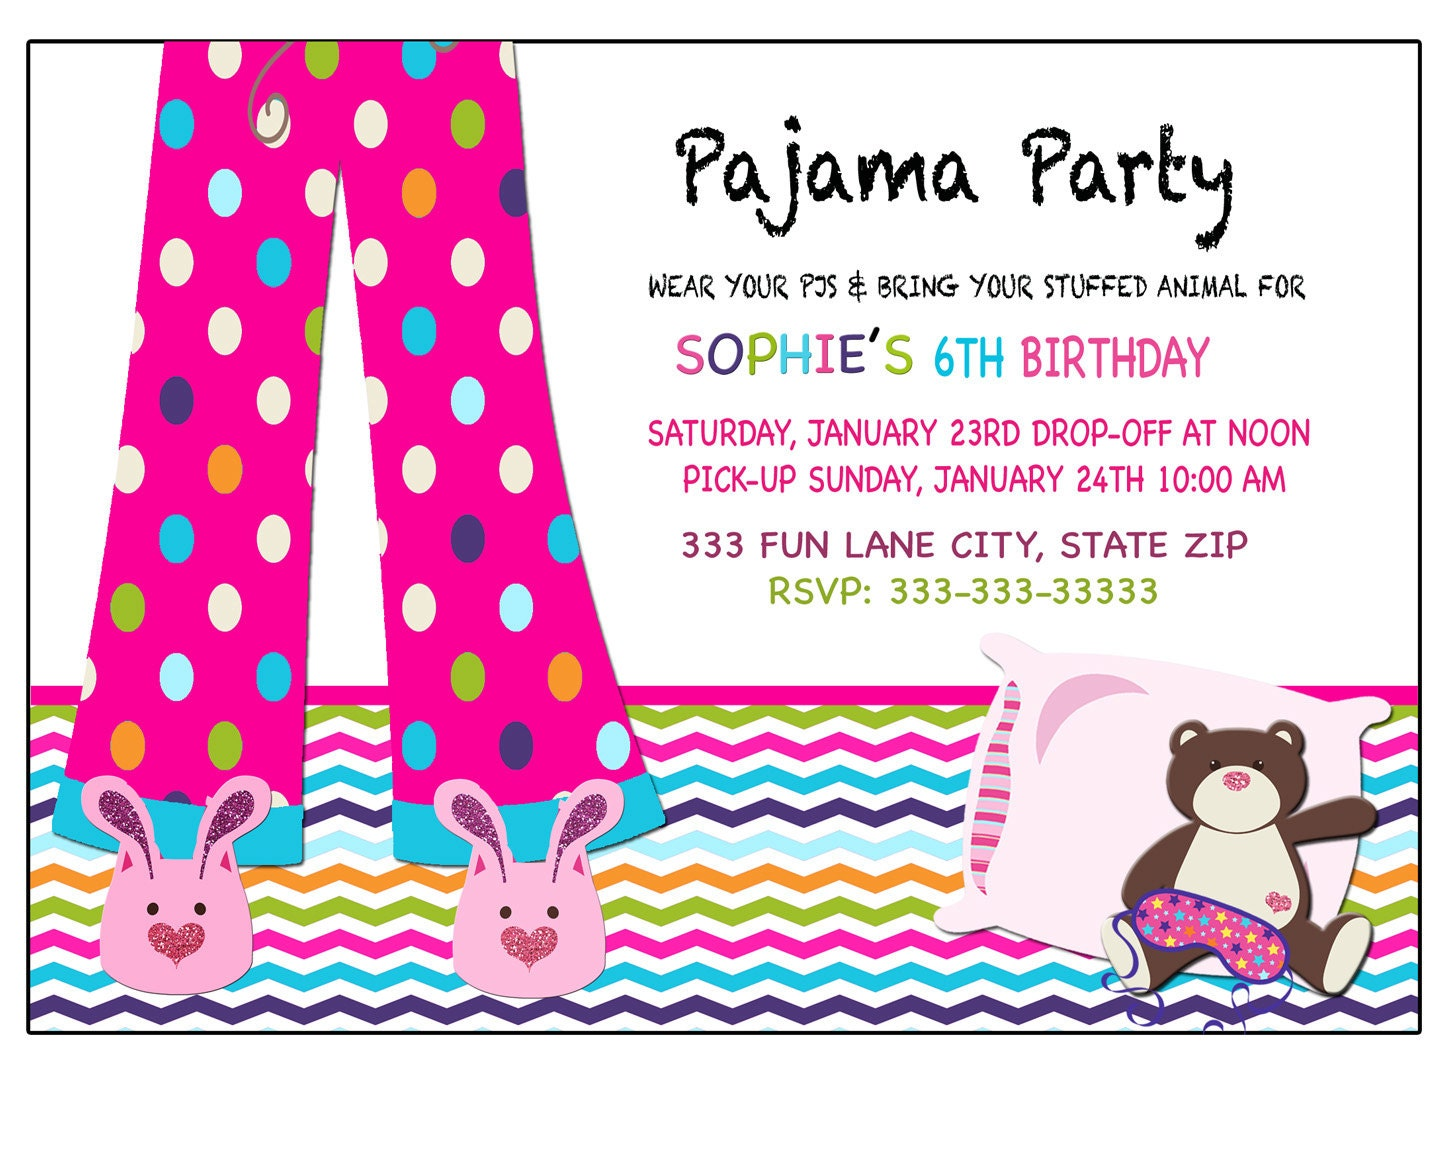 Sleepover invitation Pajama party invitation Sleepover